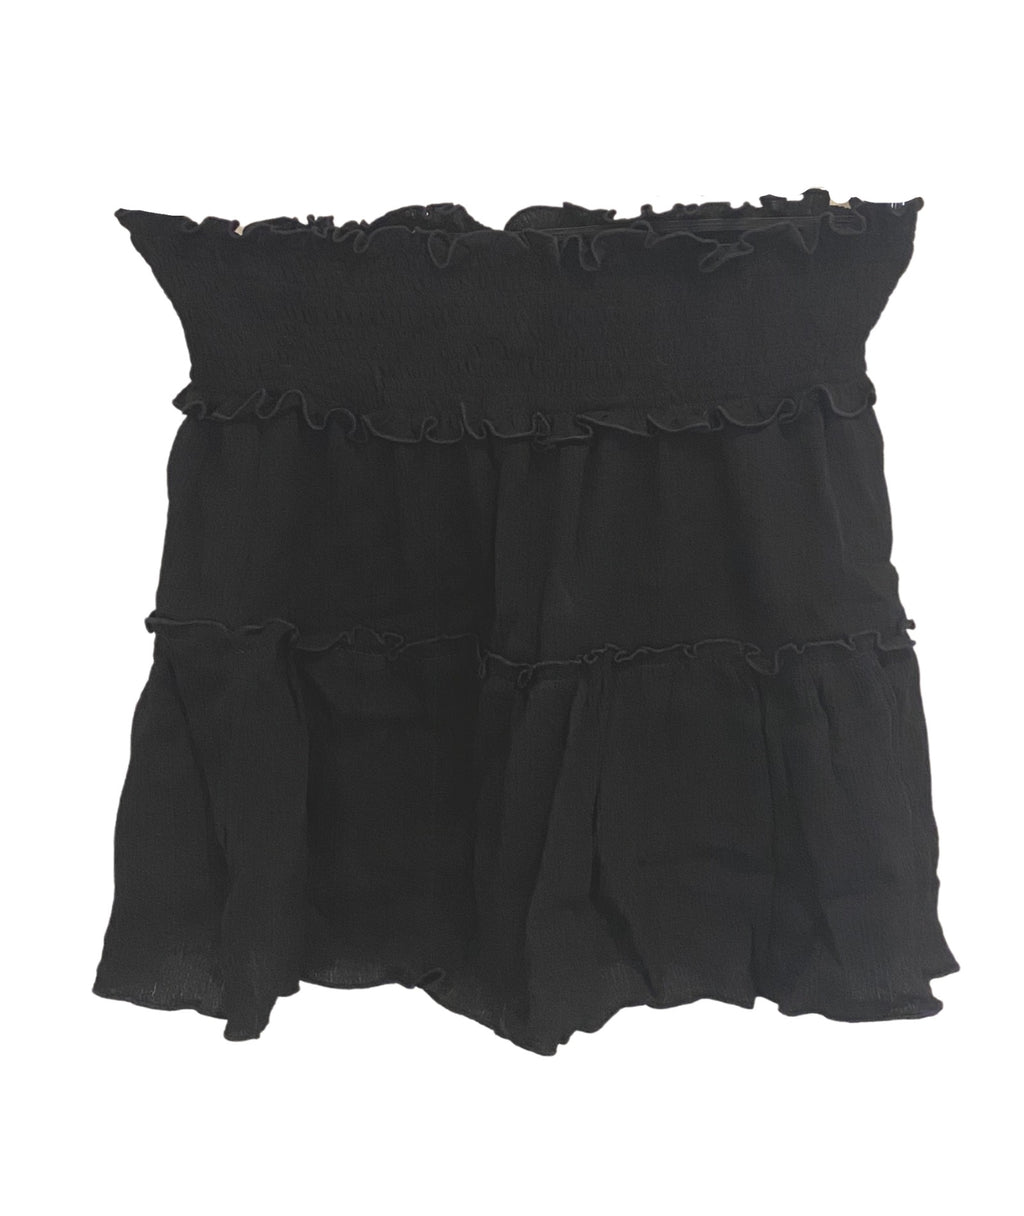 Flowers By Zoe Girls Tiered Skirt Black